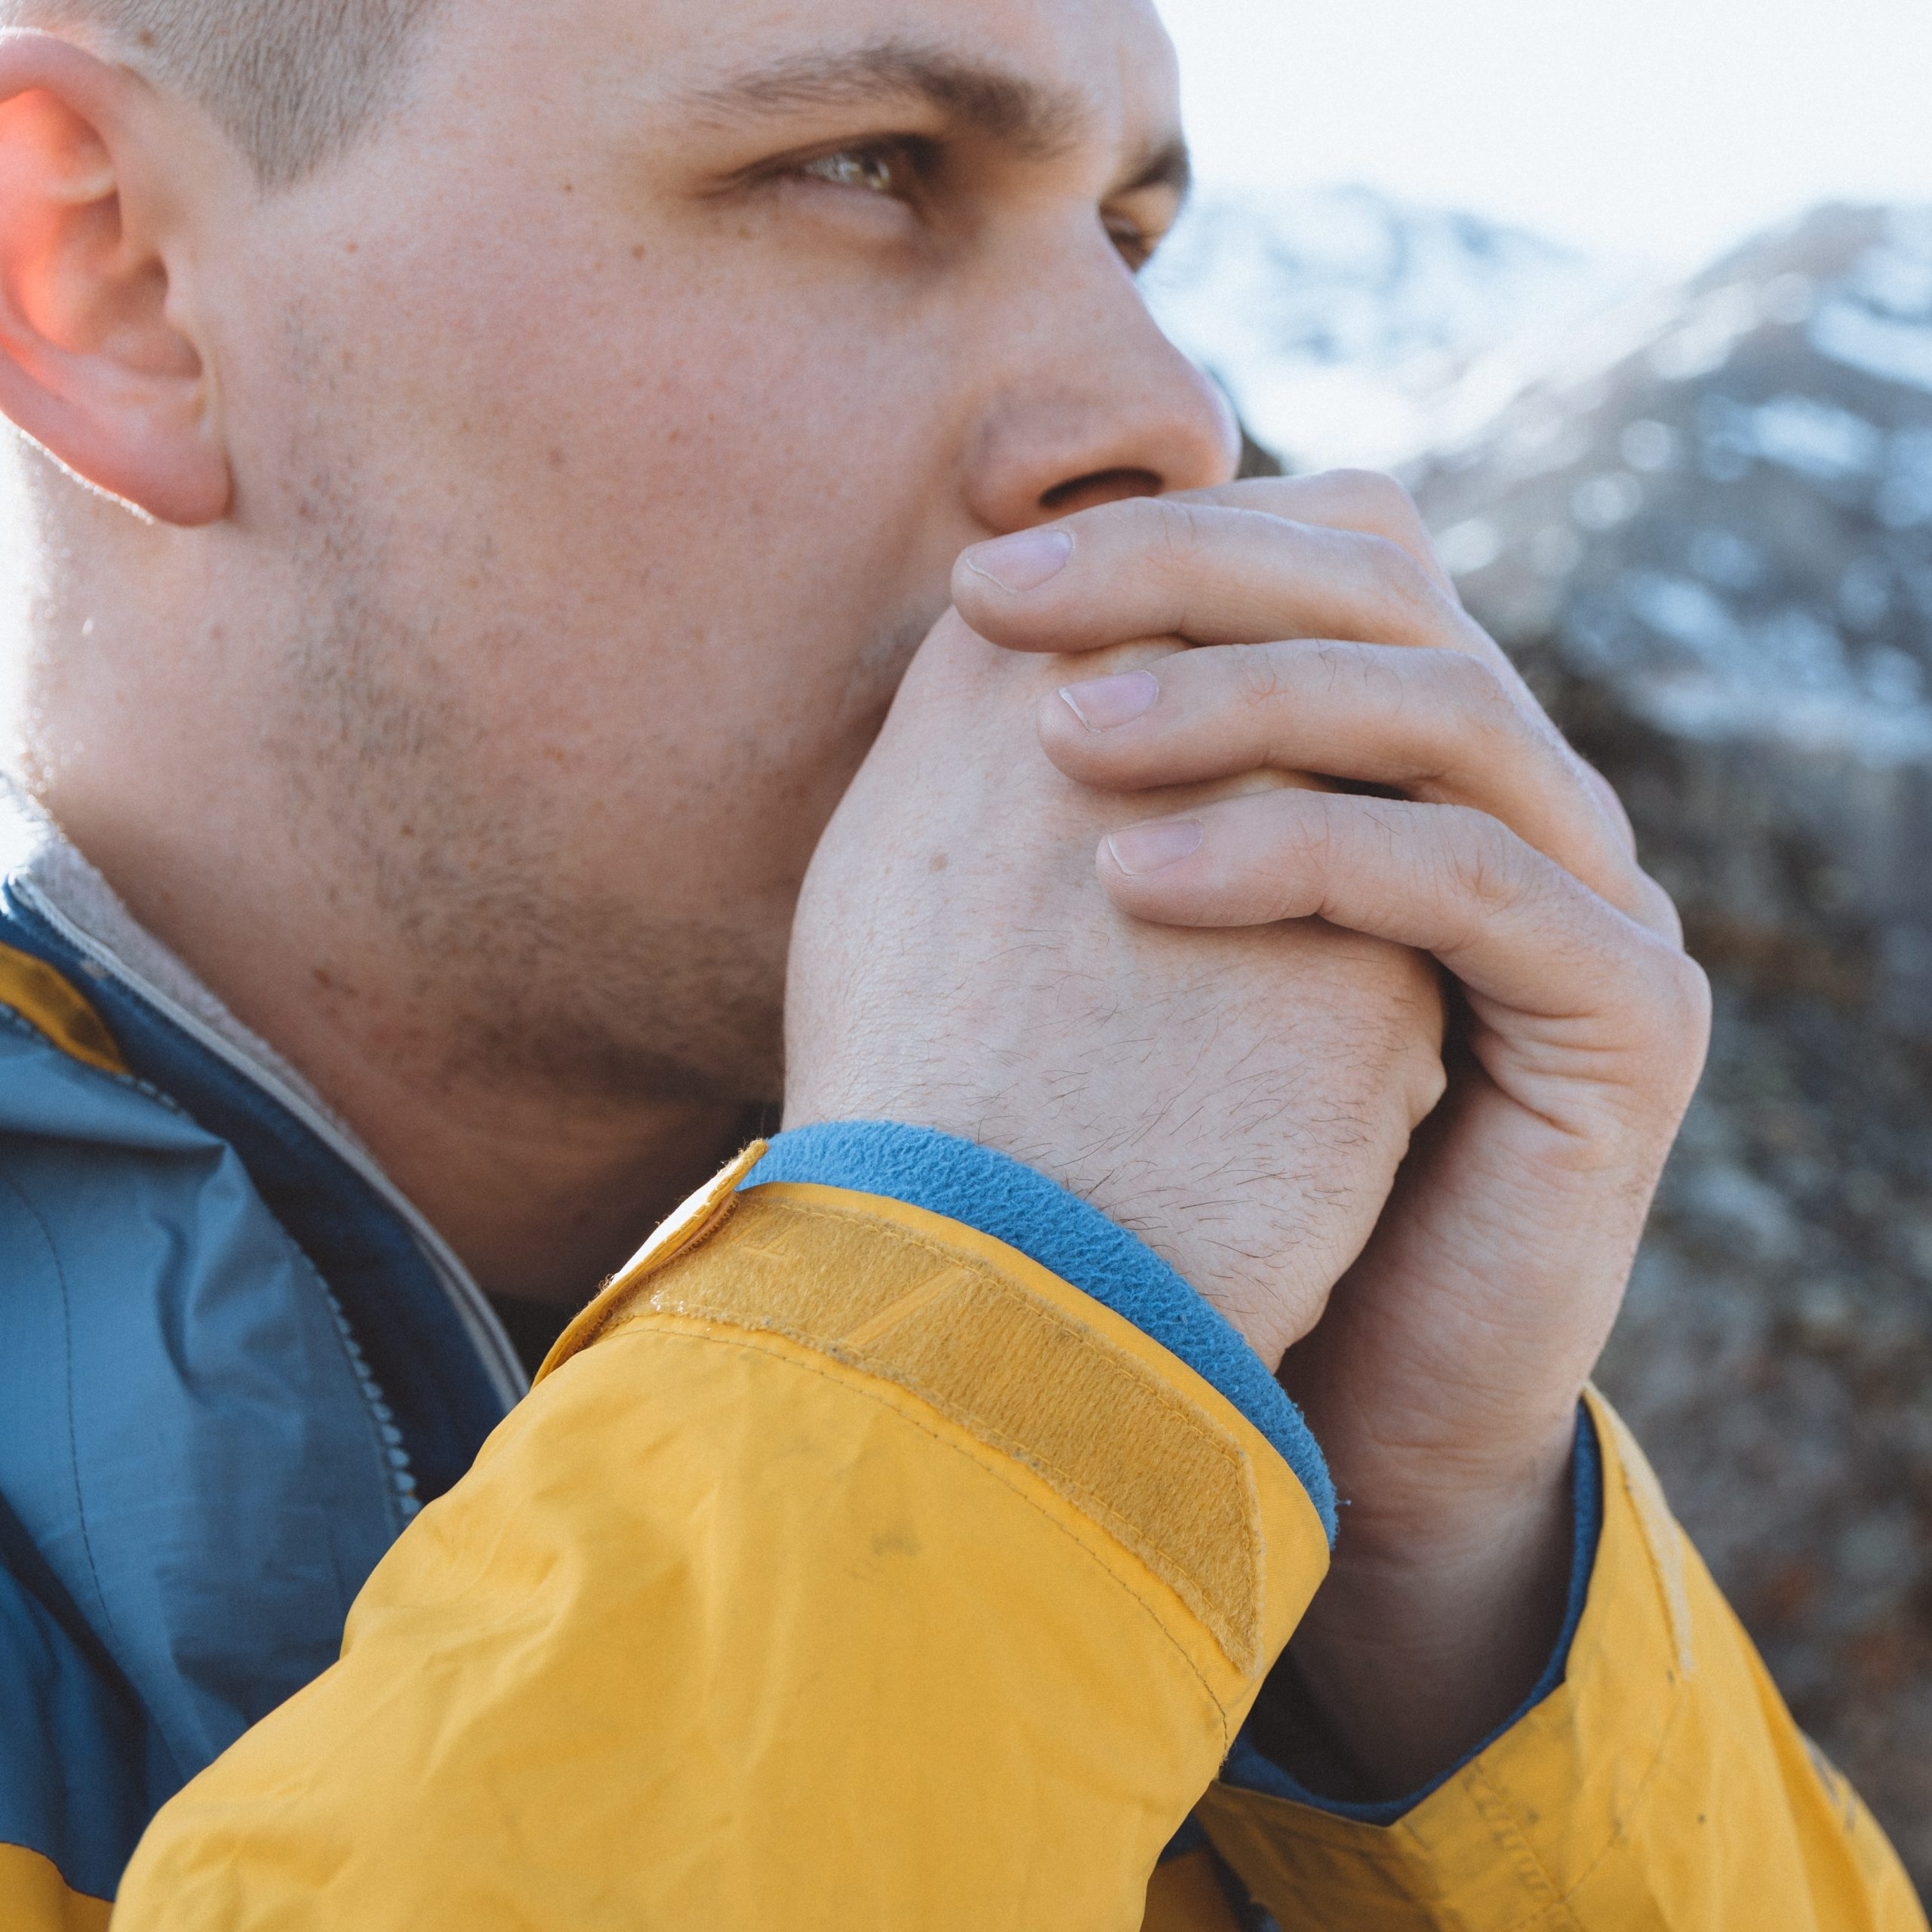 man warming his hands with his breath, cold hands, warmth